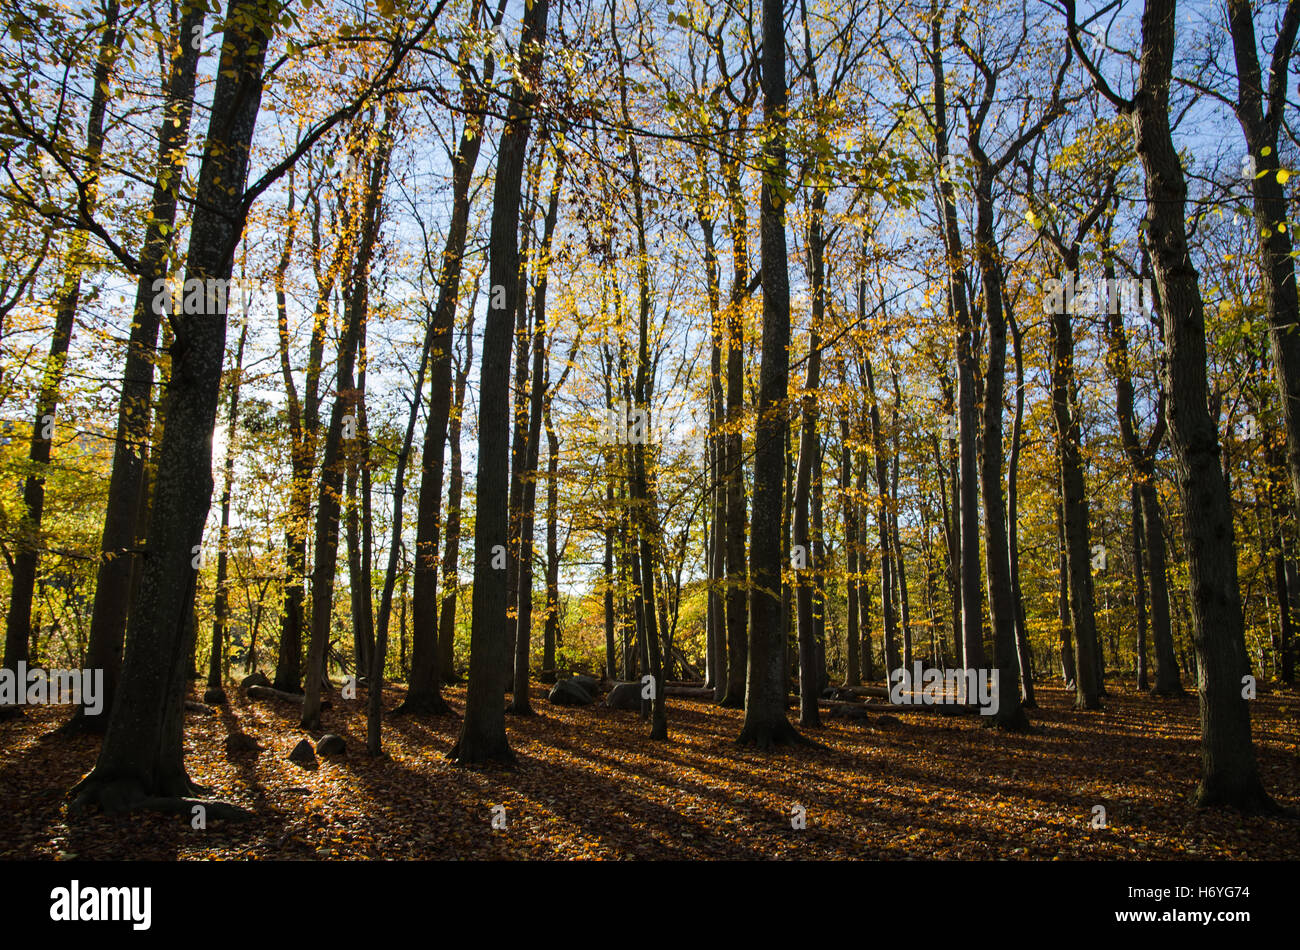 Glorious beech forest in back light and in fall colors - Stock Image